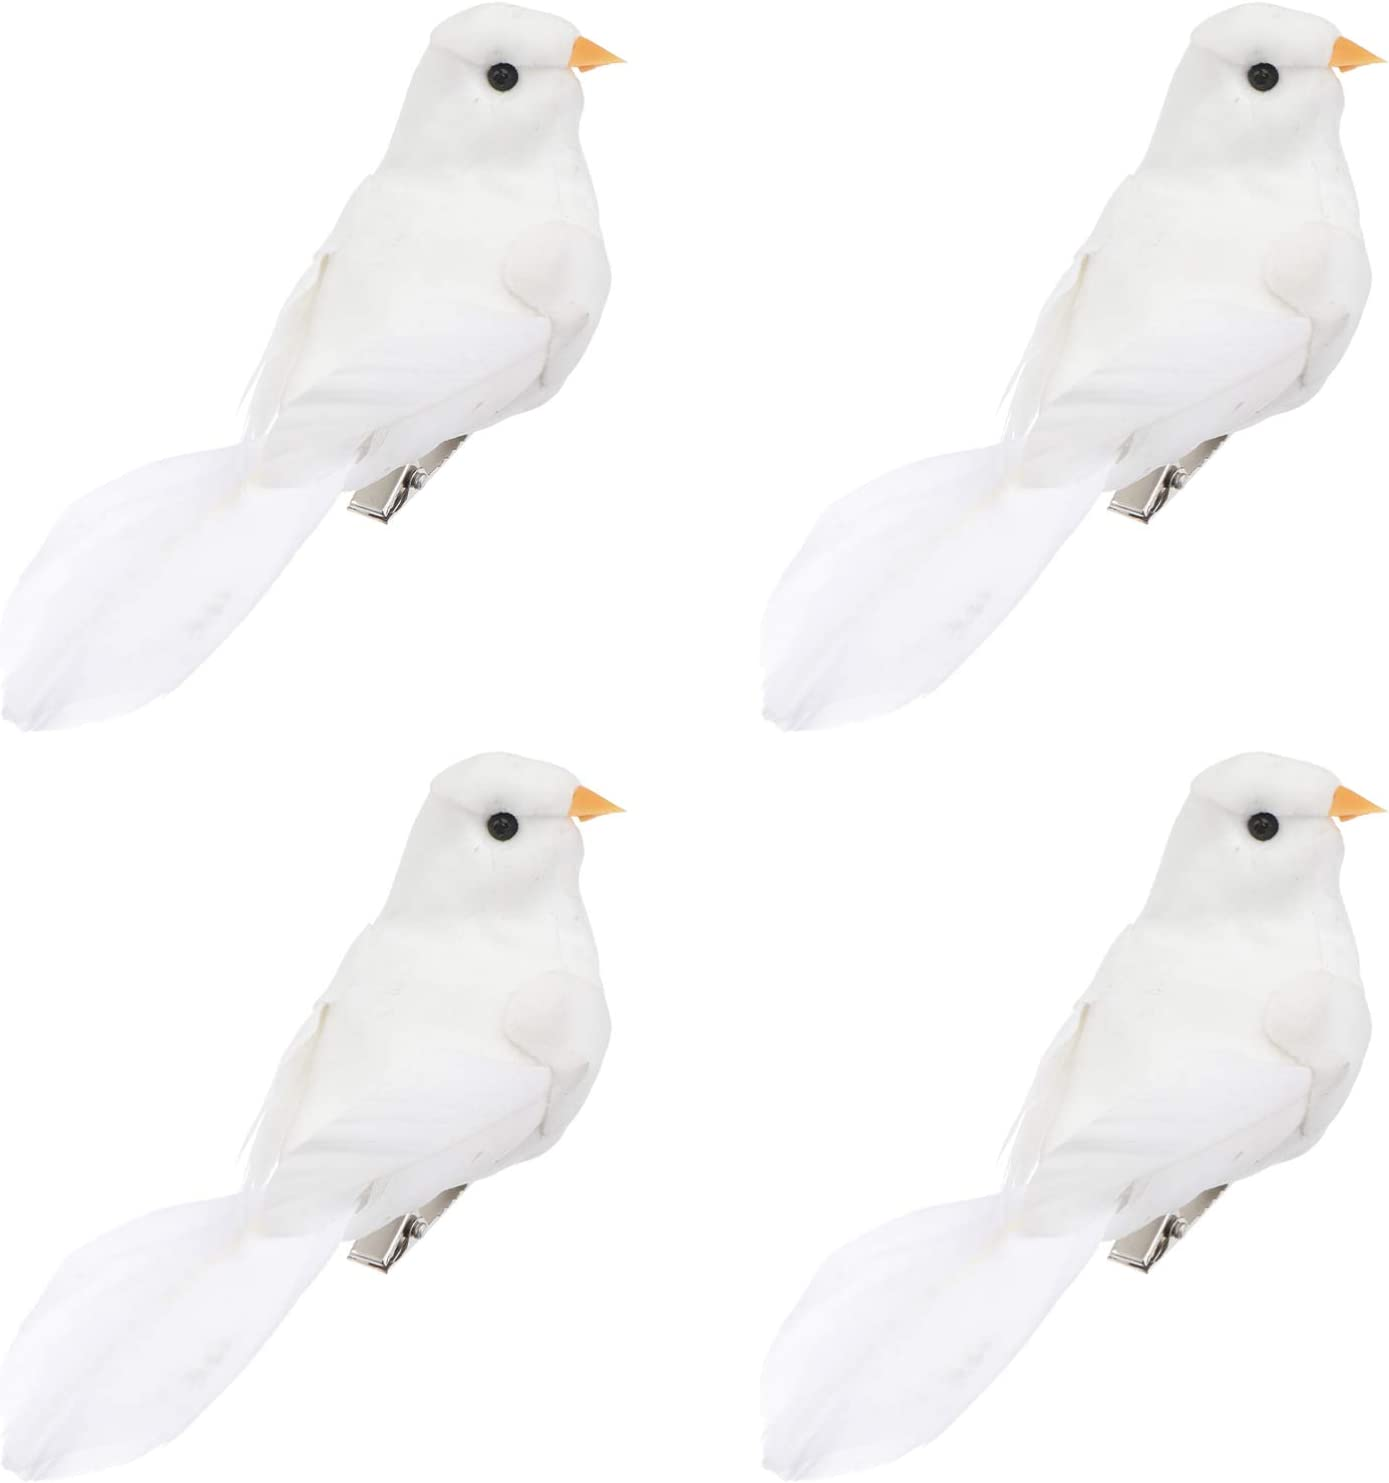 DOITOOL 4pcs Artificial Feathered White Birds Long Tail Artificial White Pigeon,Simulation Foam Craft Birds with Clips-on Tree Ornament Decorative Fake Doves for Home Garden Wedding Decor